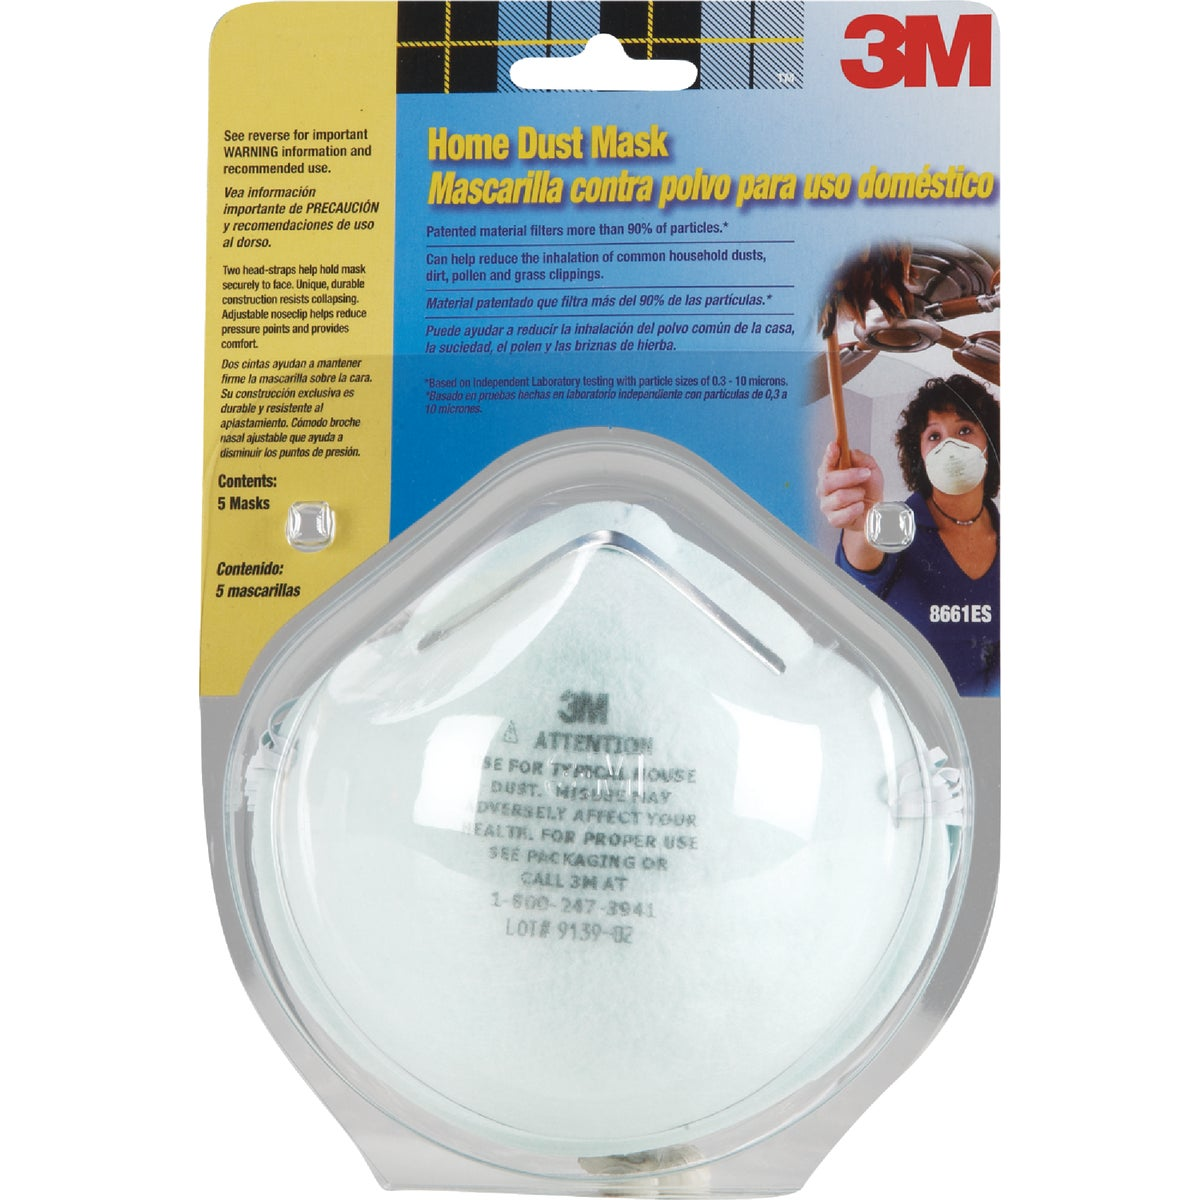 5PK HOME DUST MASK - 8661PC1-A by 3m Co